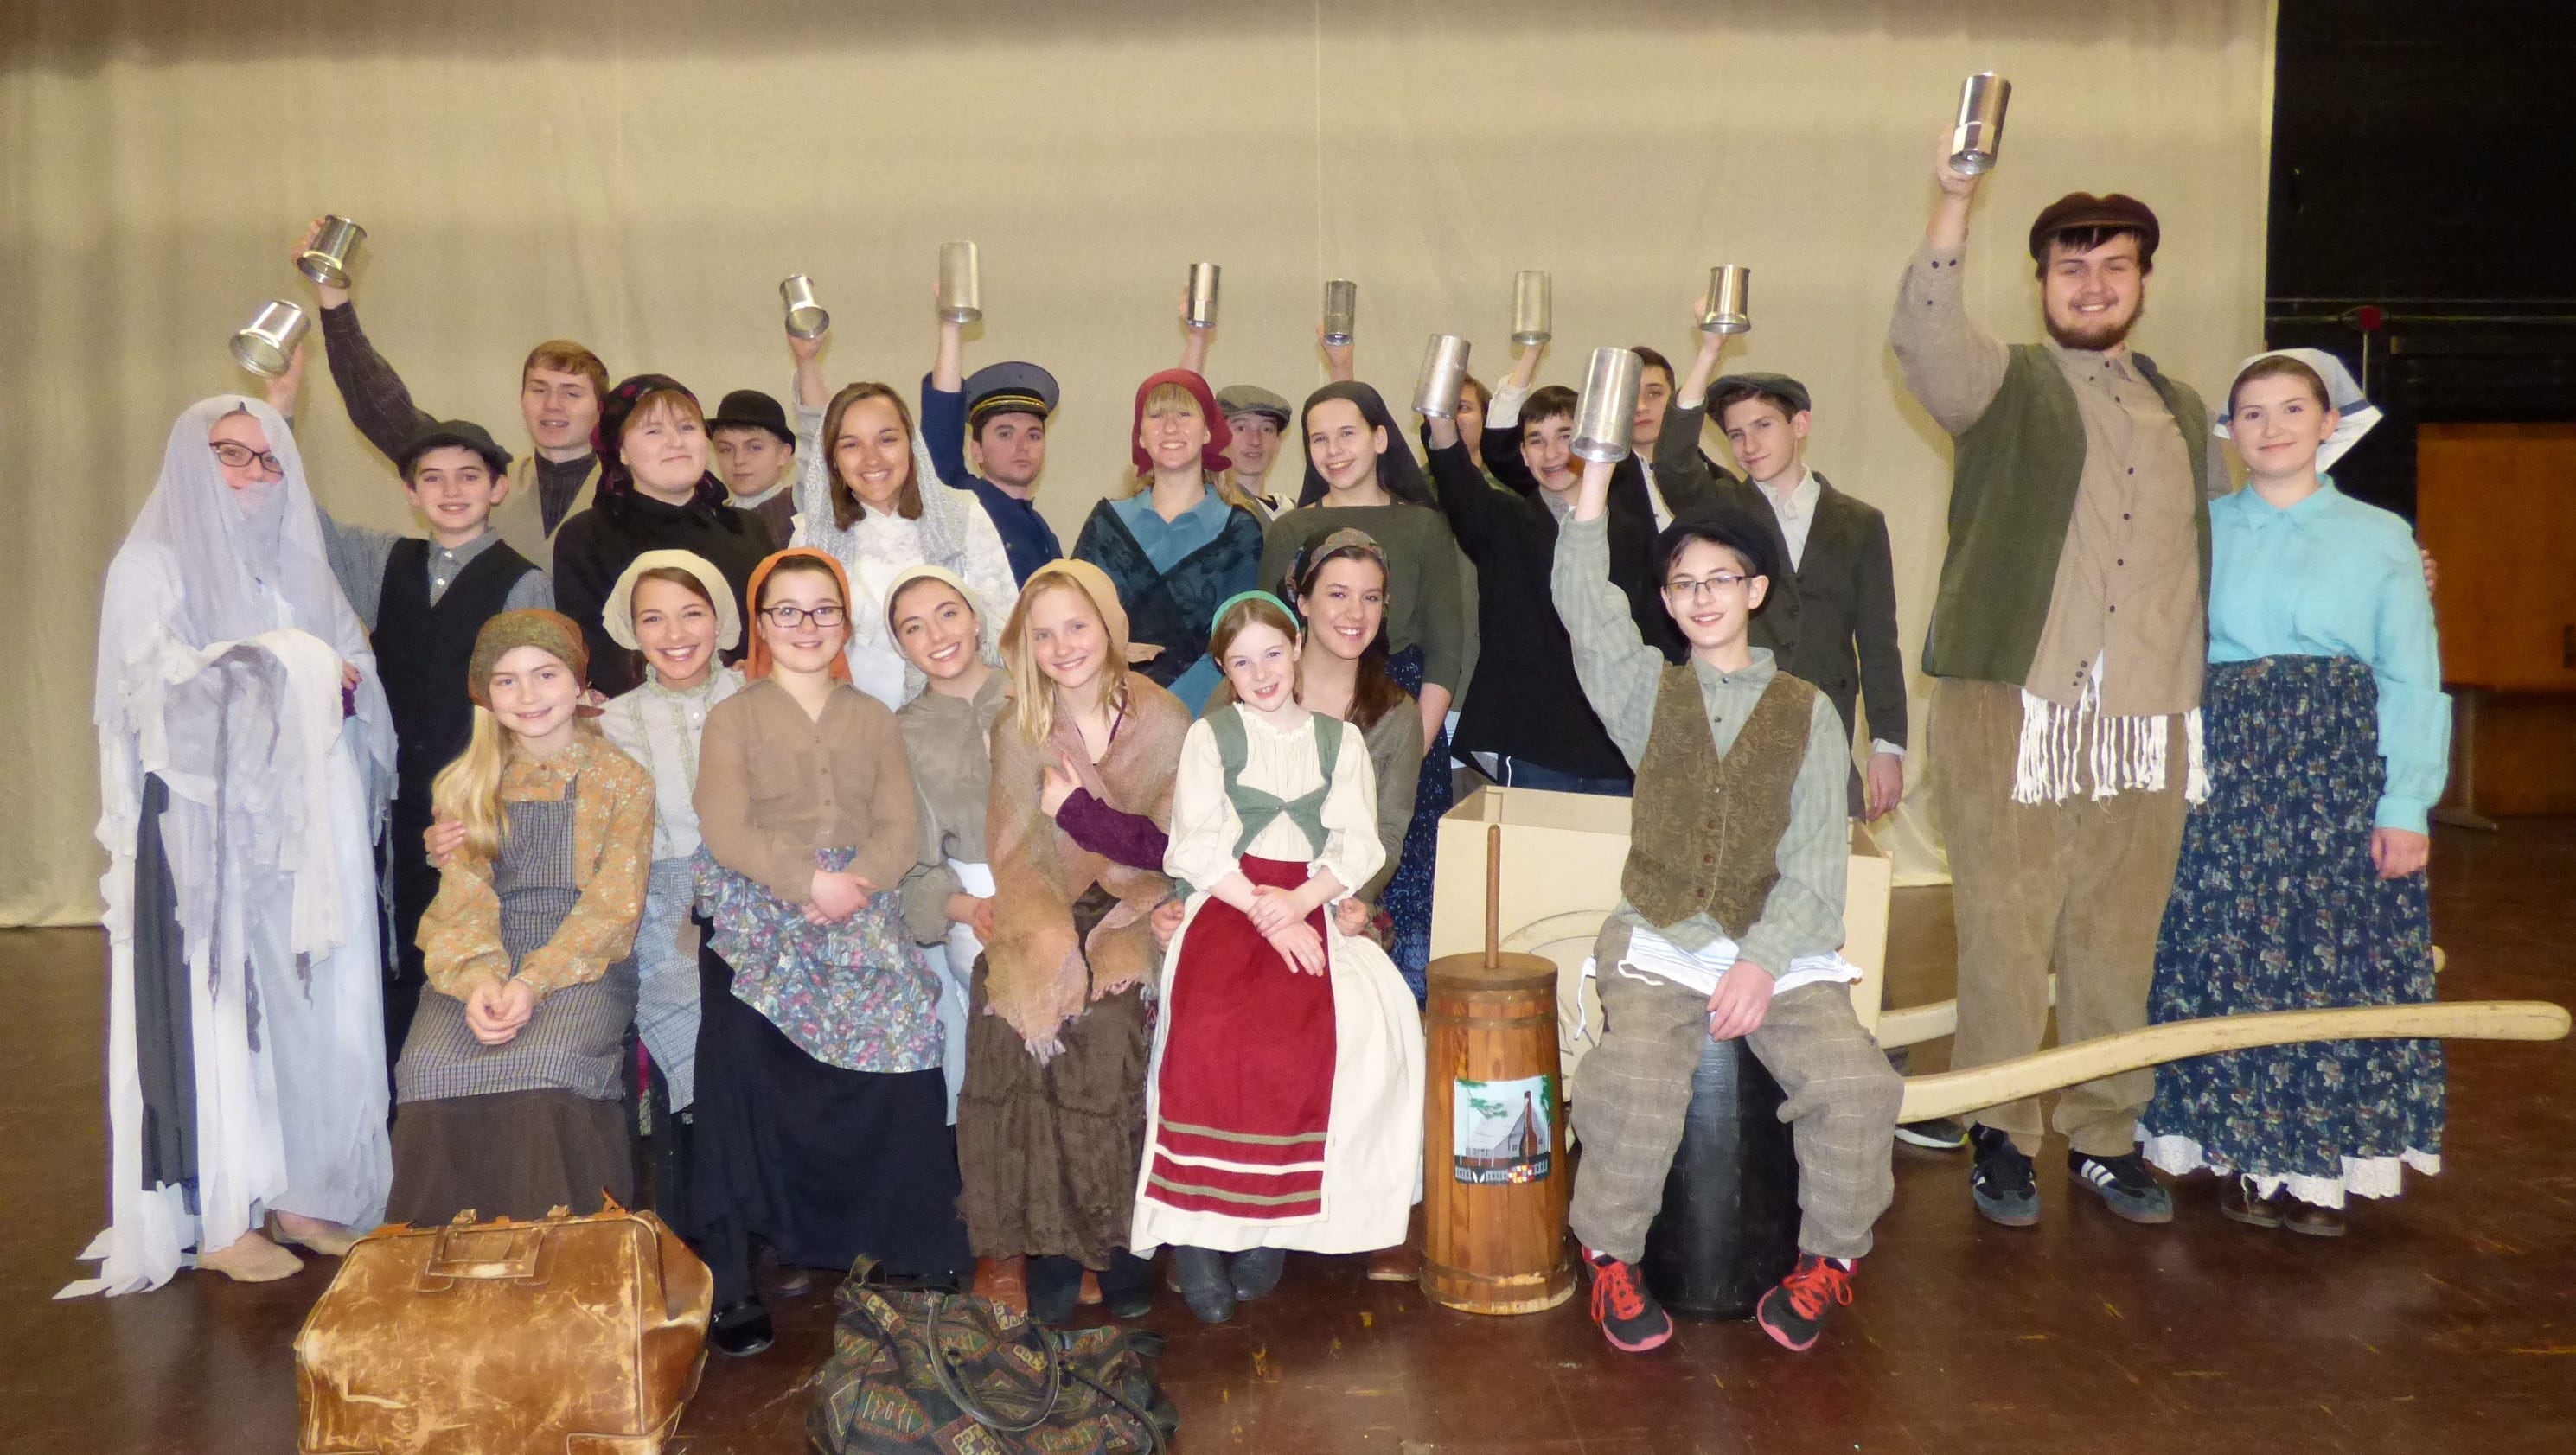 Fiddler On The Roof Cast Gifts Gift Ftempo